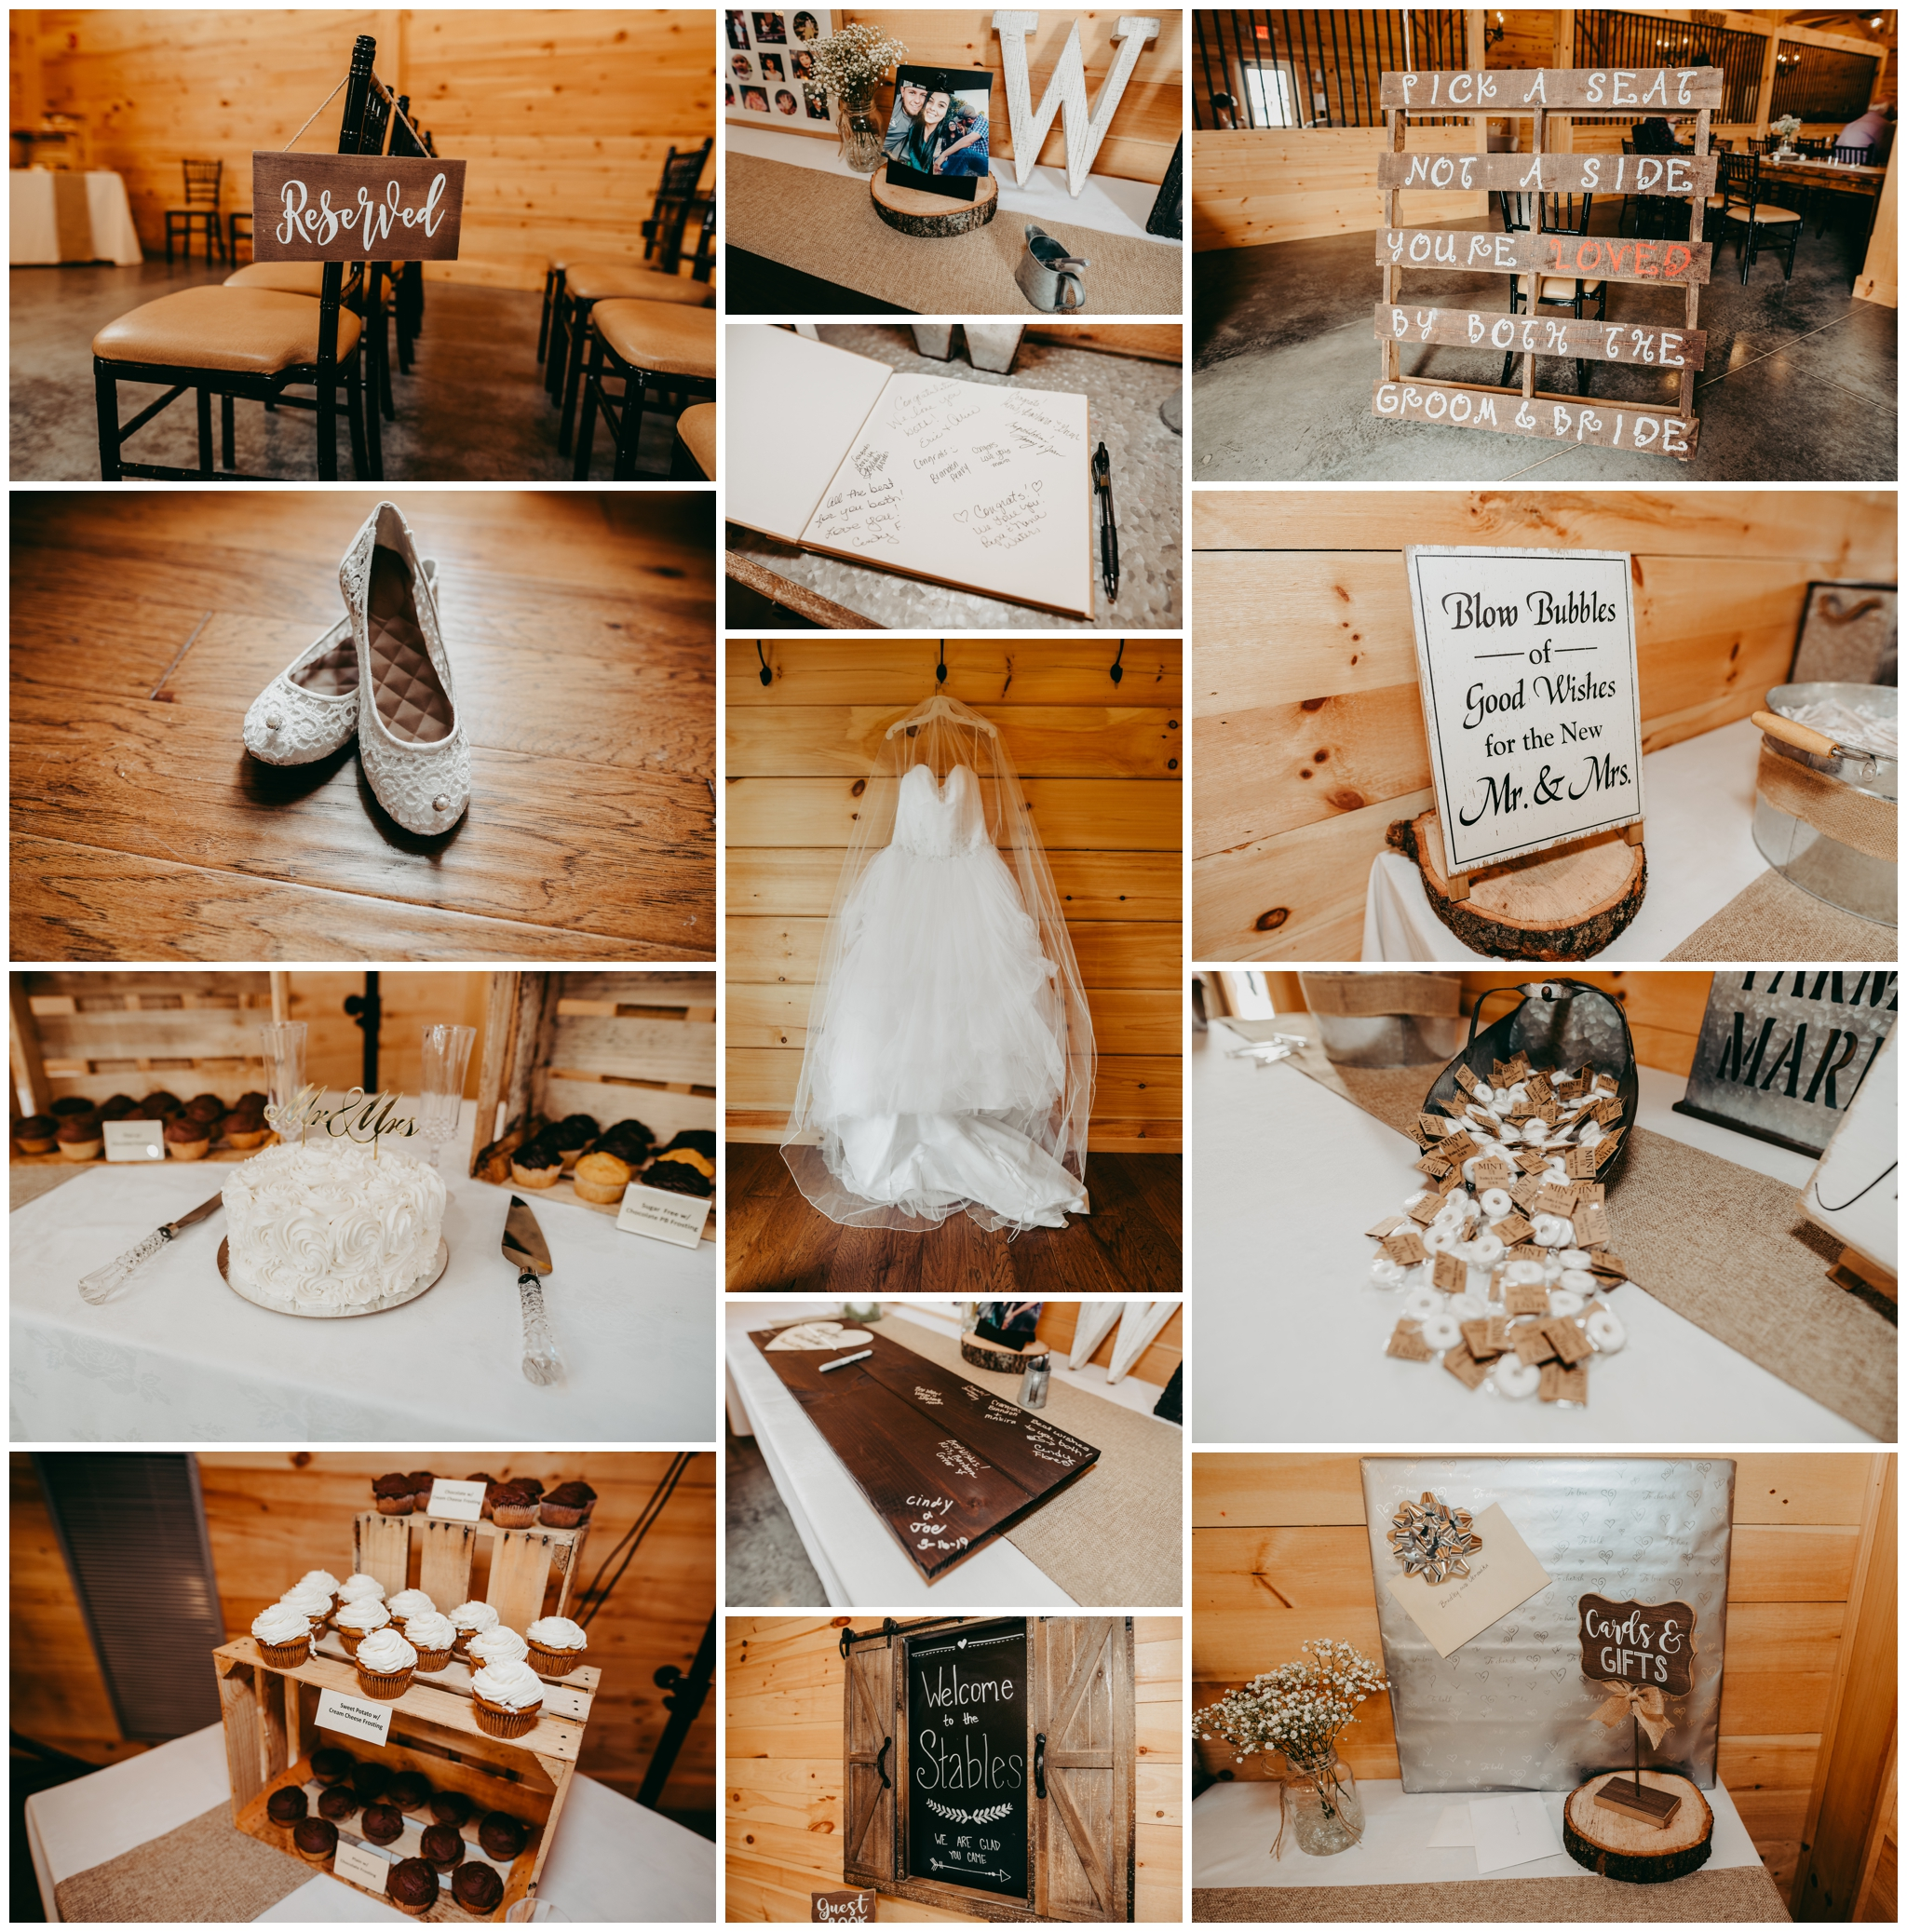 The details were simple, but yet so beautiful. The browns fit the rustic theme perfectly …